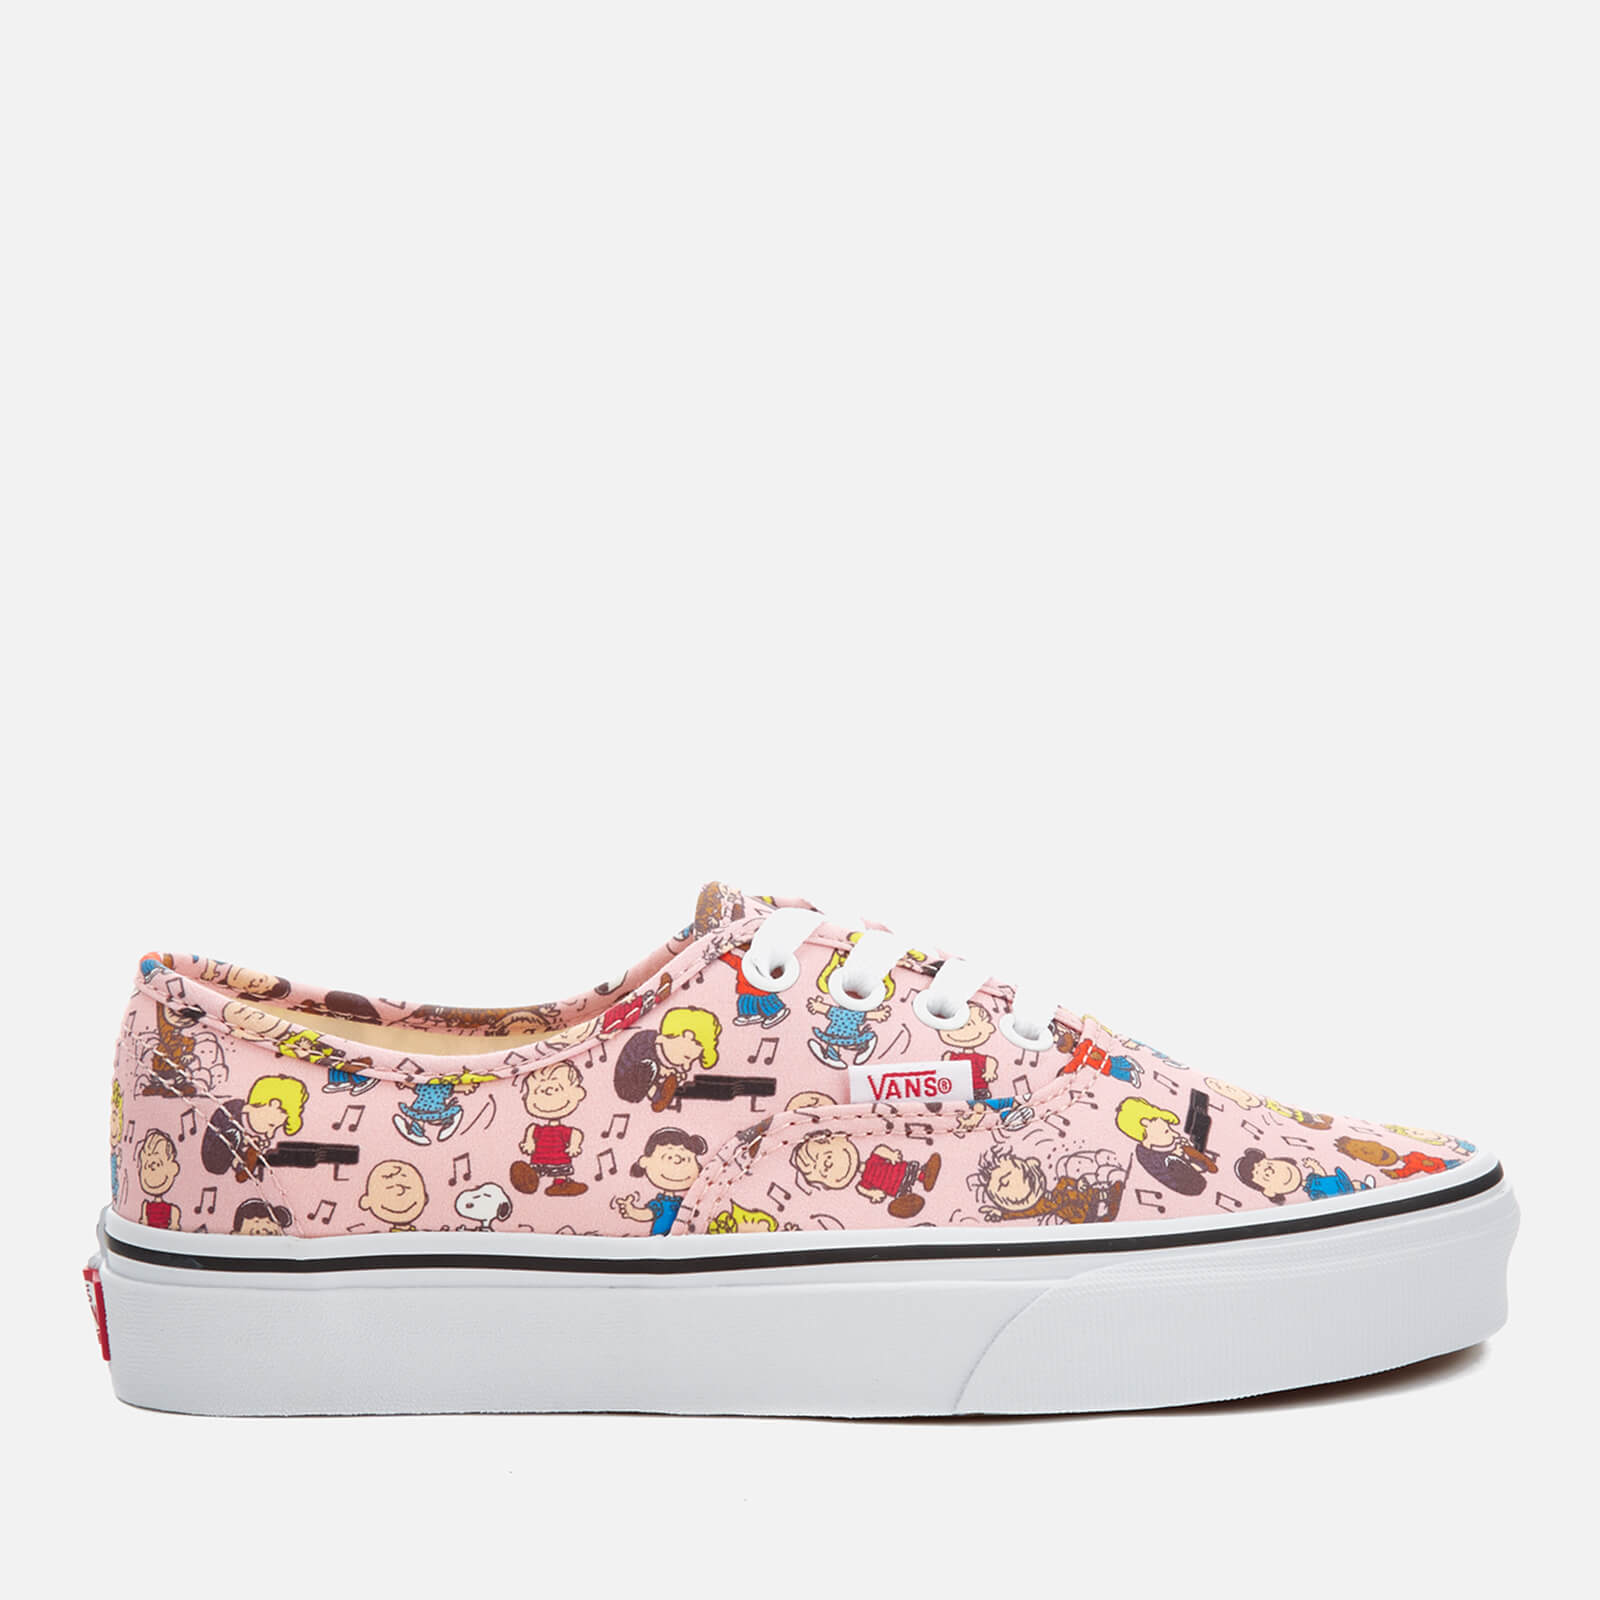 f0bb95f08f89f8 Vans X Peanuts Women s Authentic Trainers - Dance Party Pink Clothing